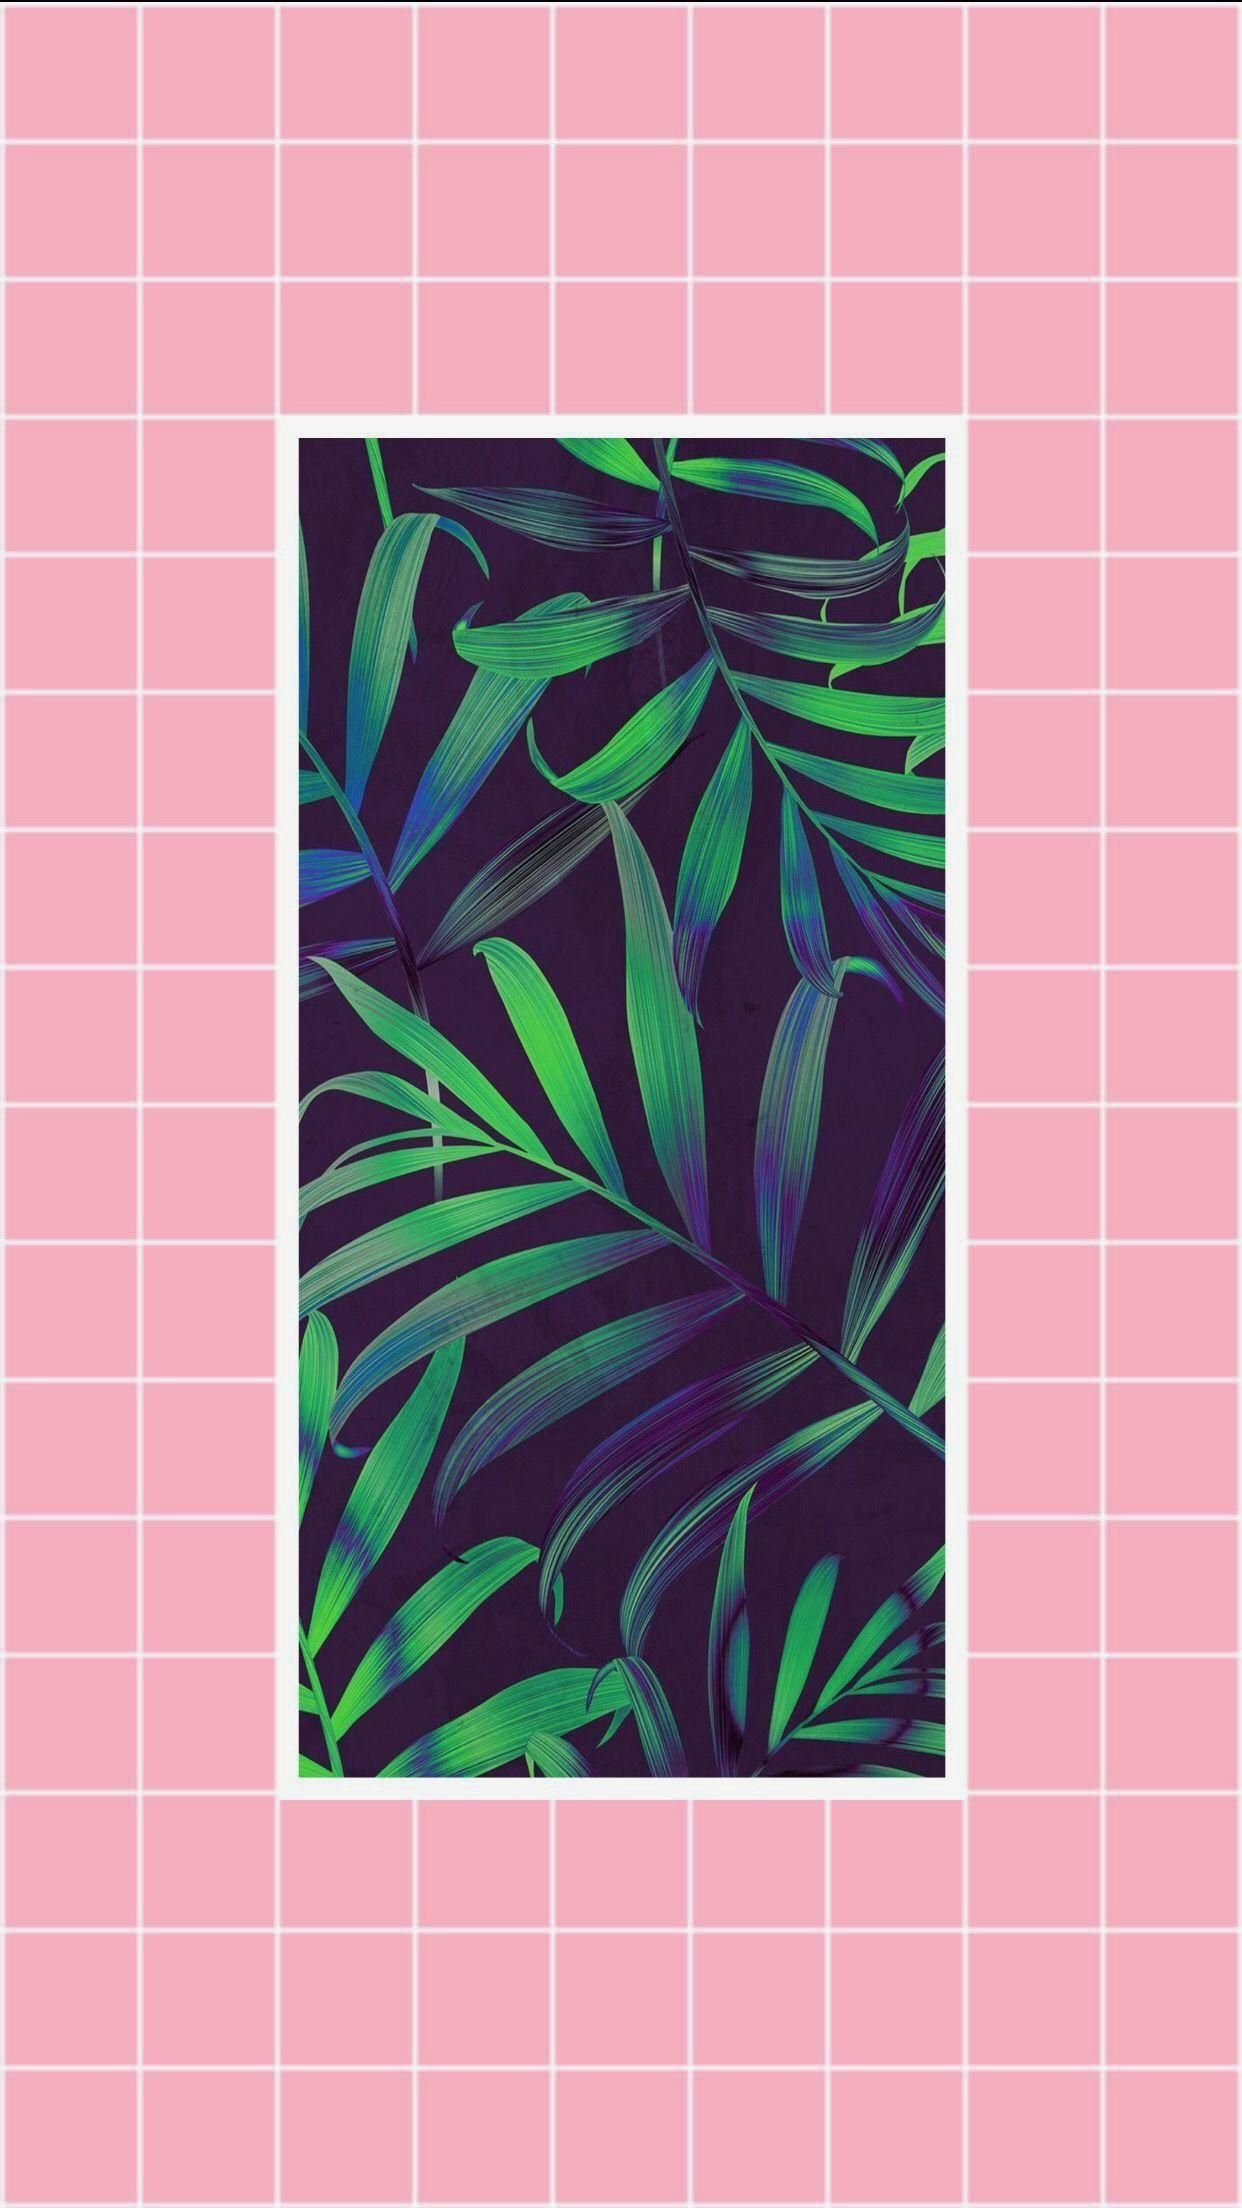 Vaporwave Vaporwave Wallpaper Vaporwave Art Aesthetic Wallpapers